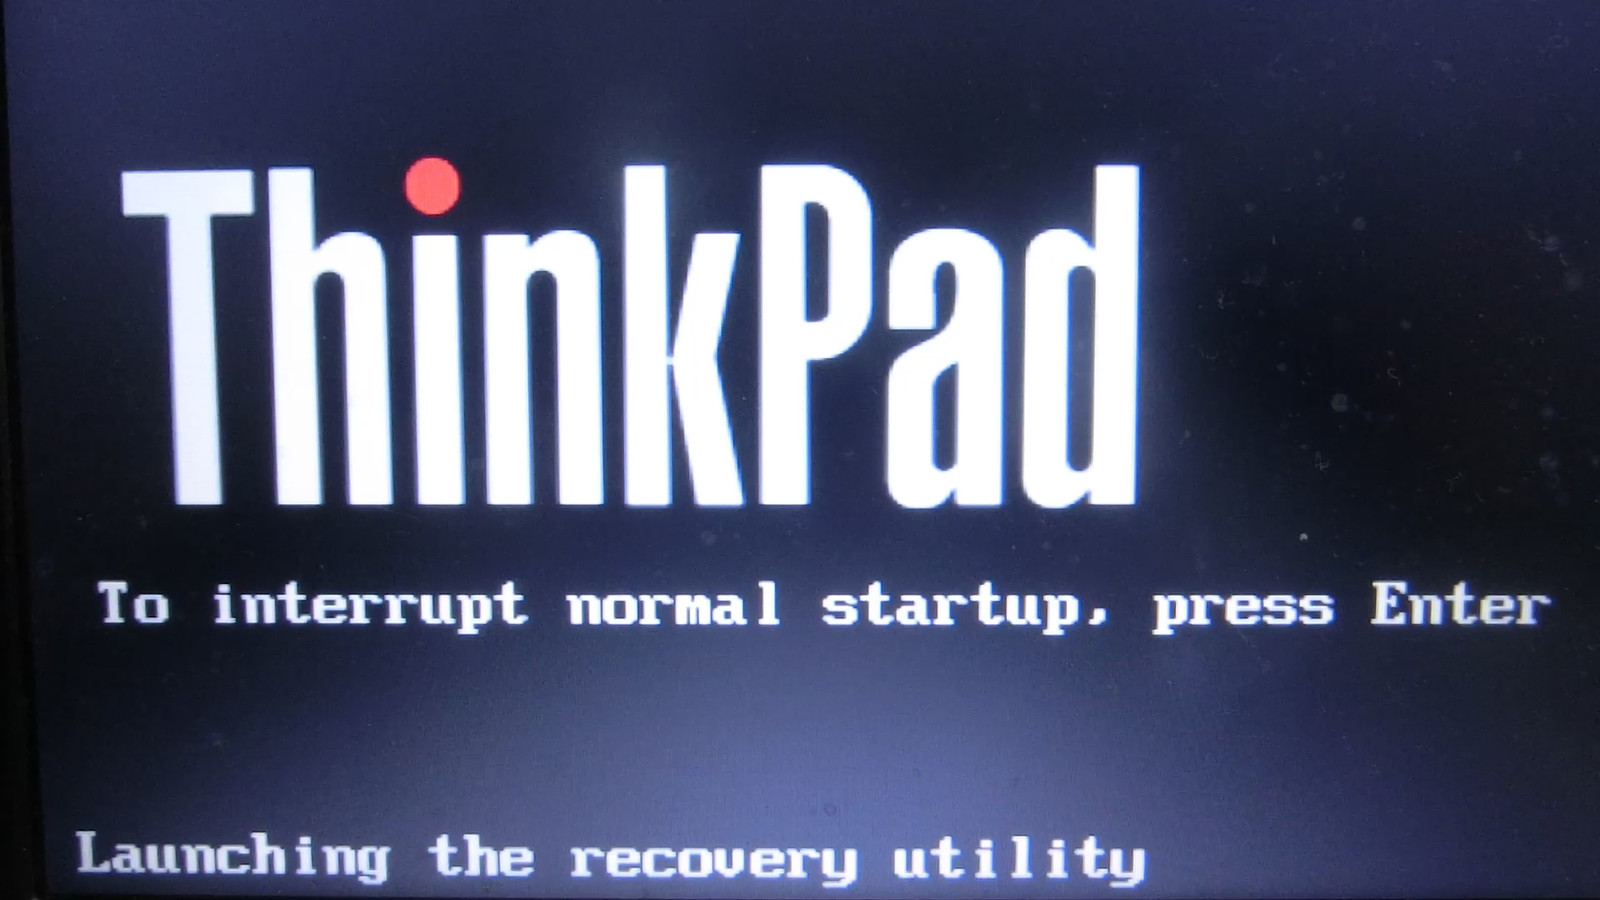 Thinkpad_x230_launching_the_recover